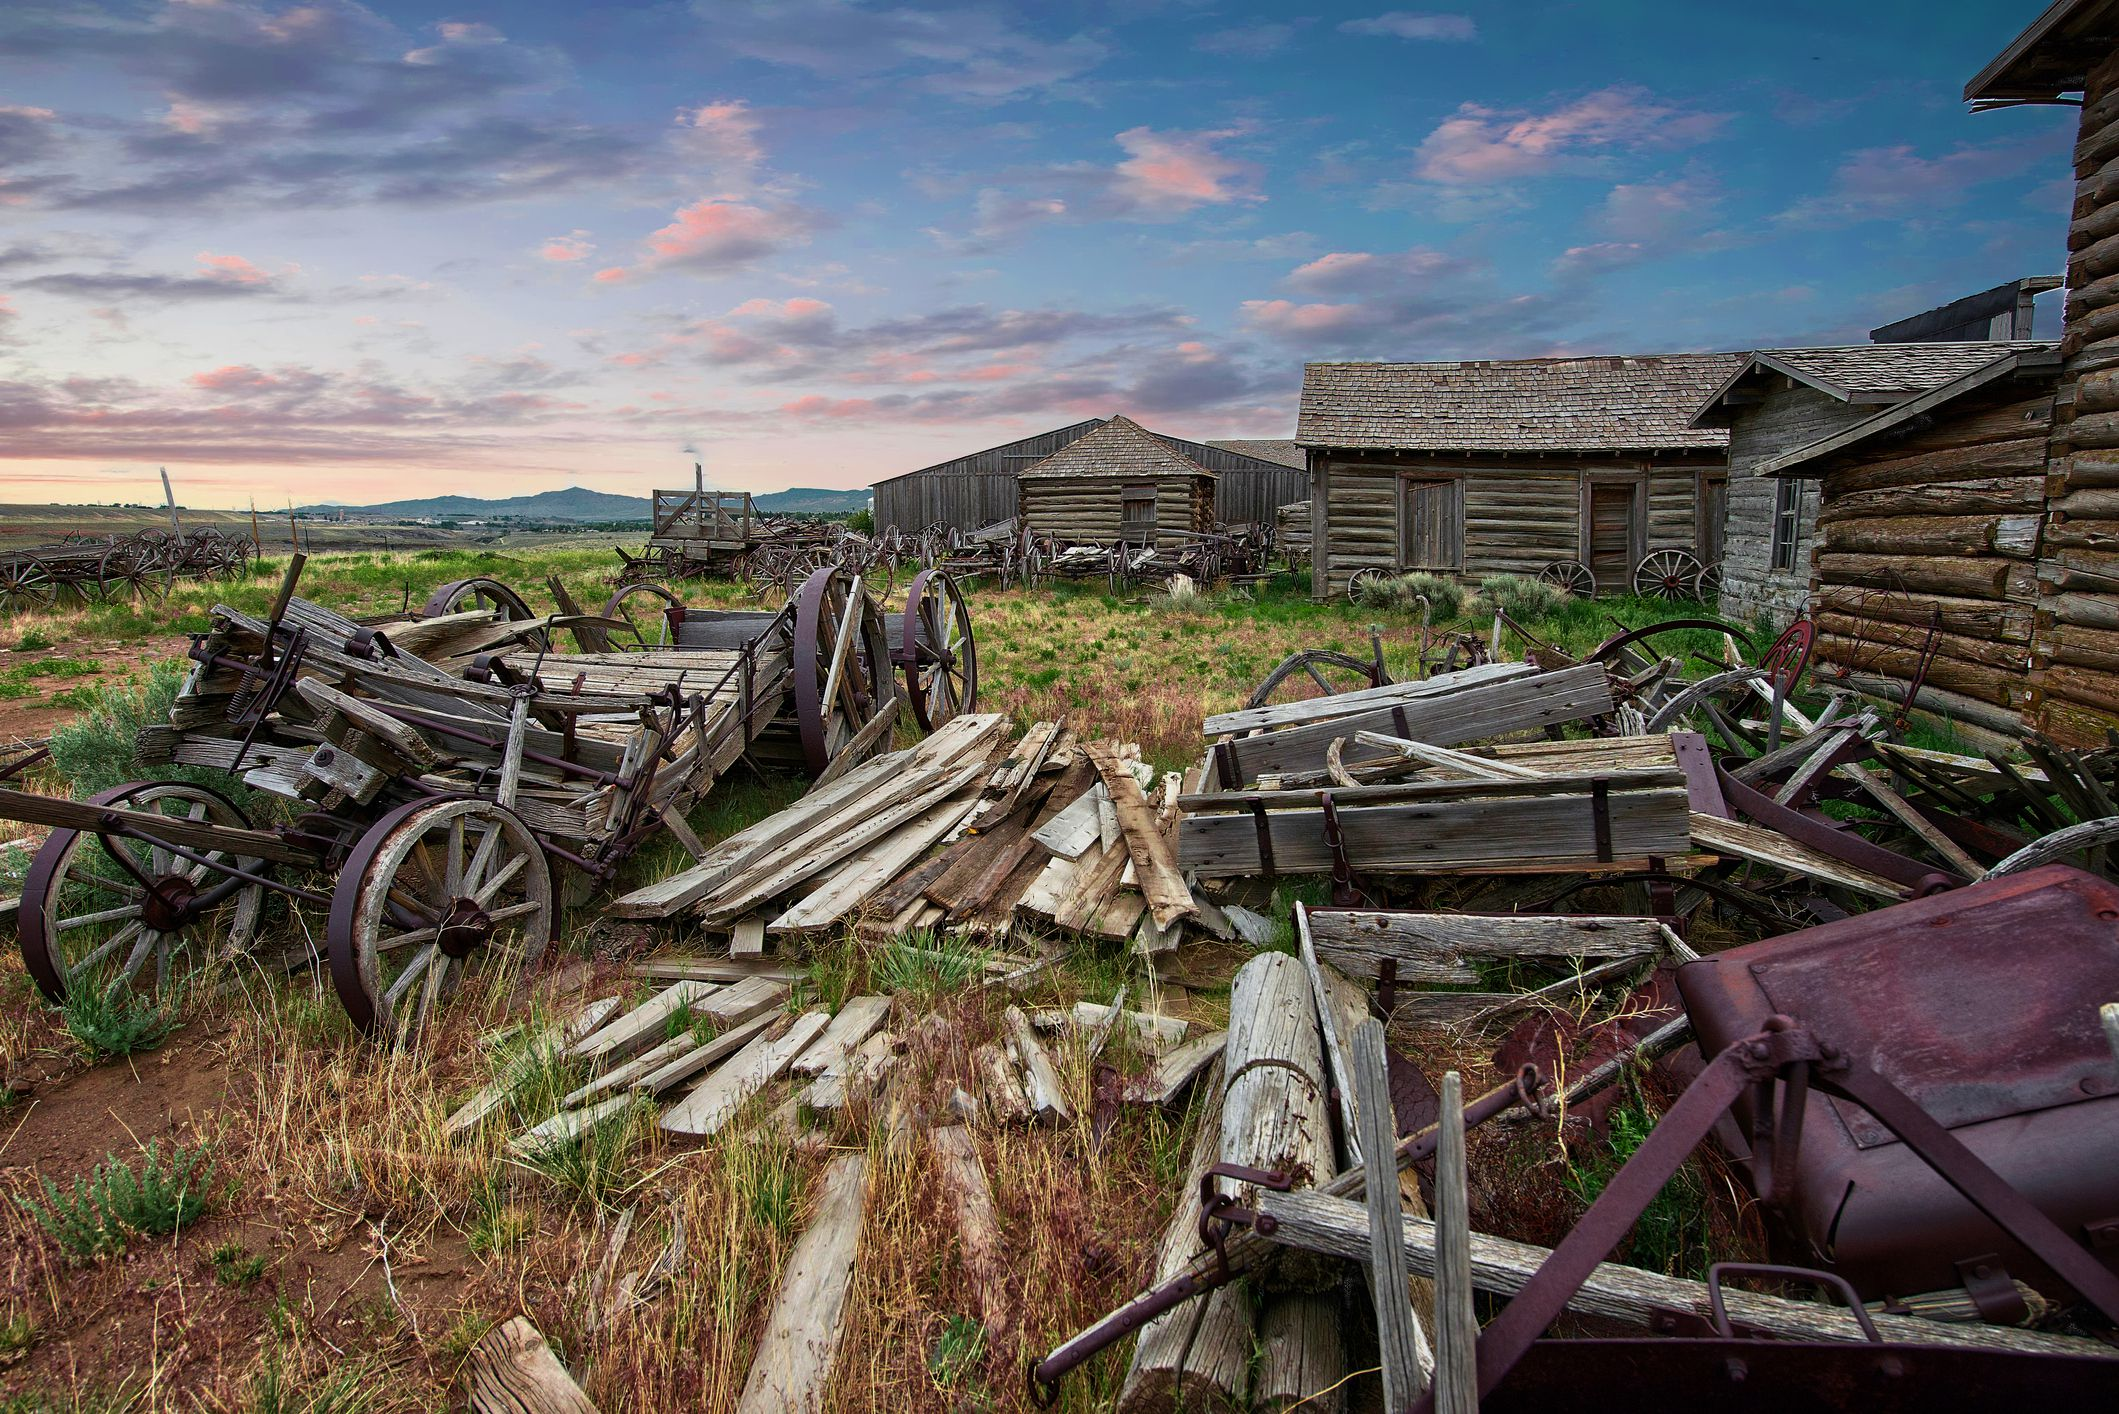 Old log cabins and wagons in Cody, United States